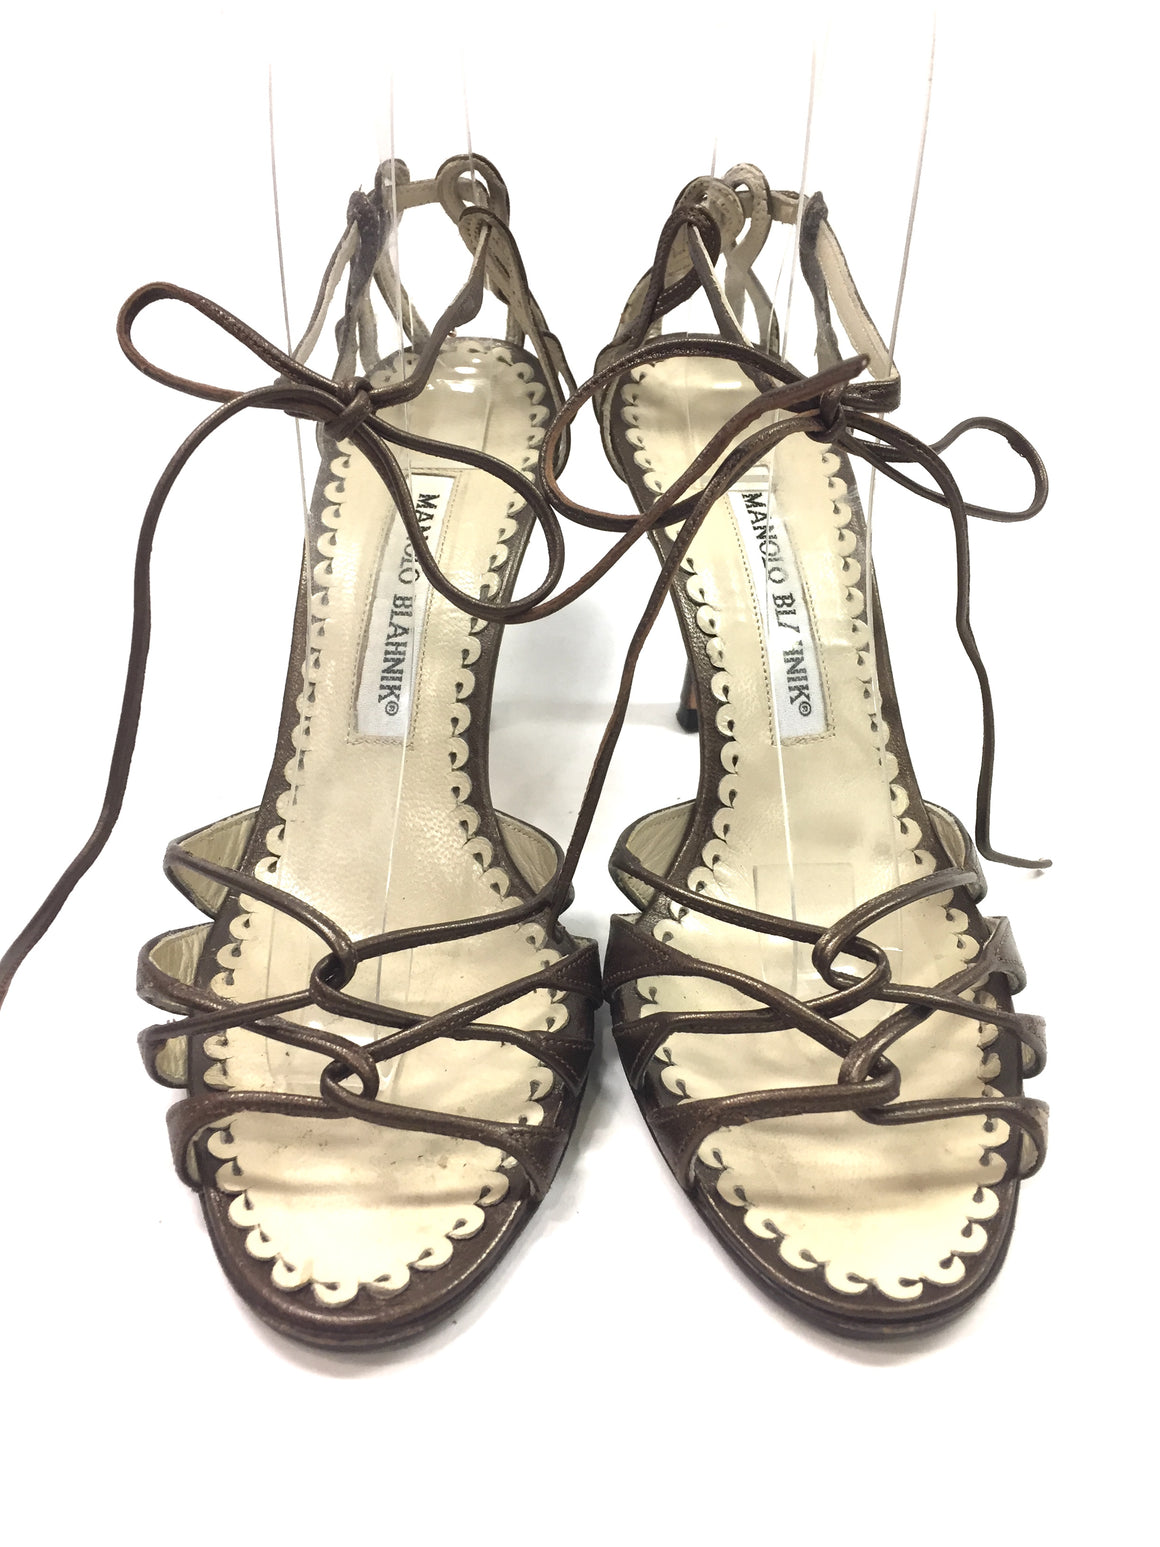 MANOLO BLAHNIK Copper-Brown Leather Strappy Ankle-Tie Hi=Heel Sandals Sz35.5